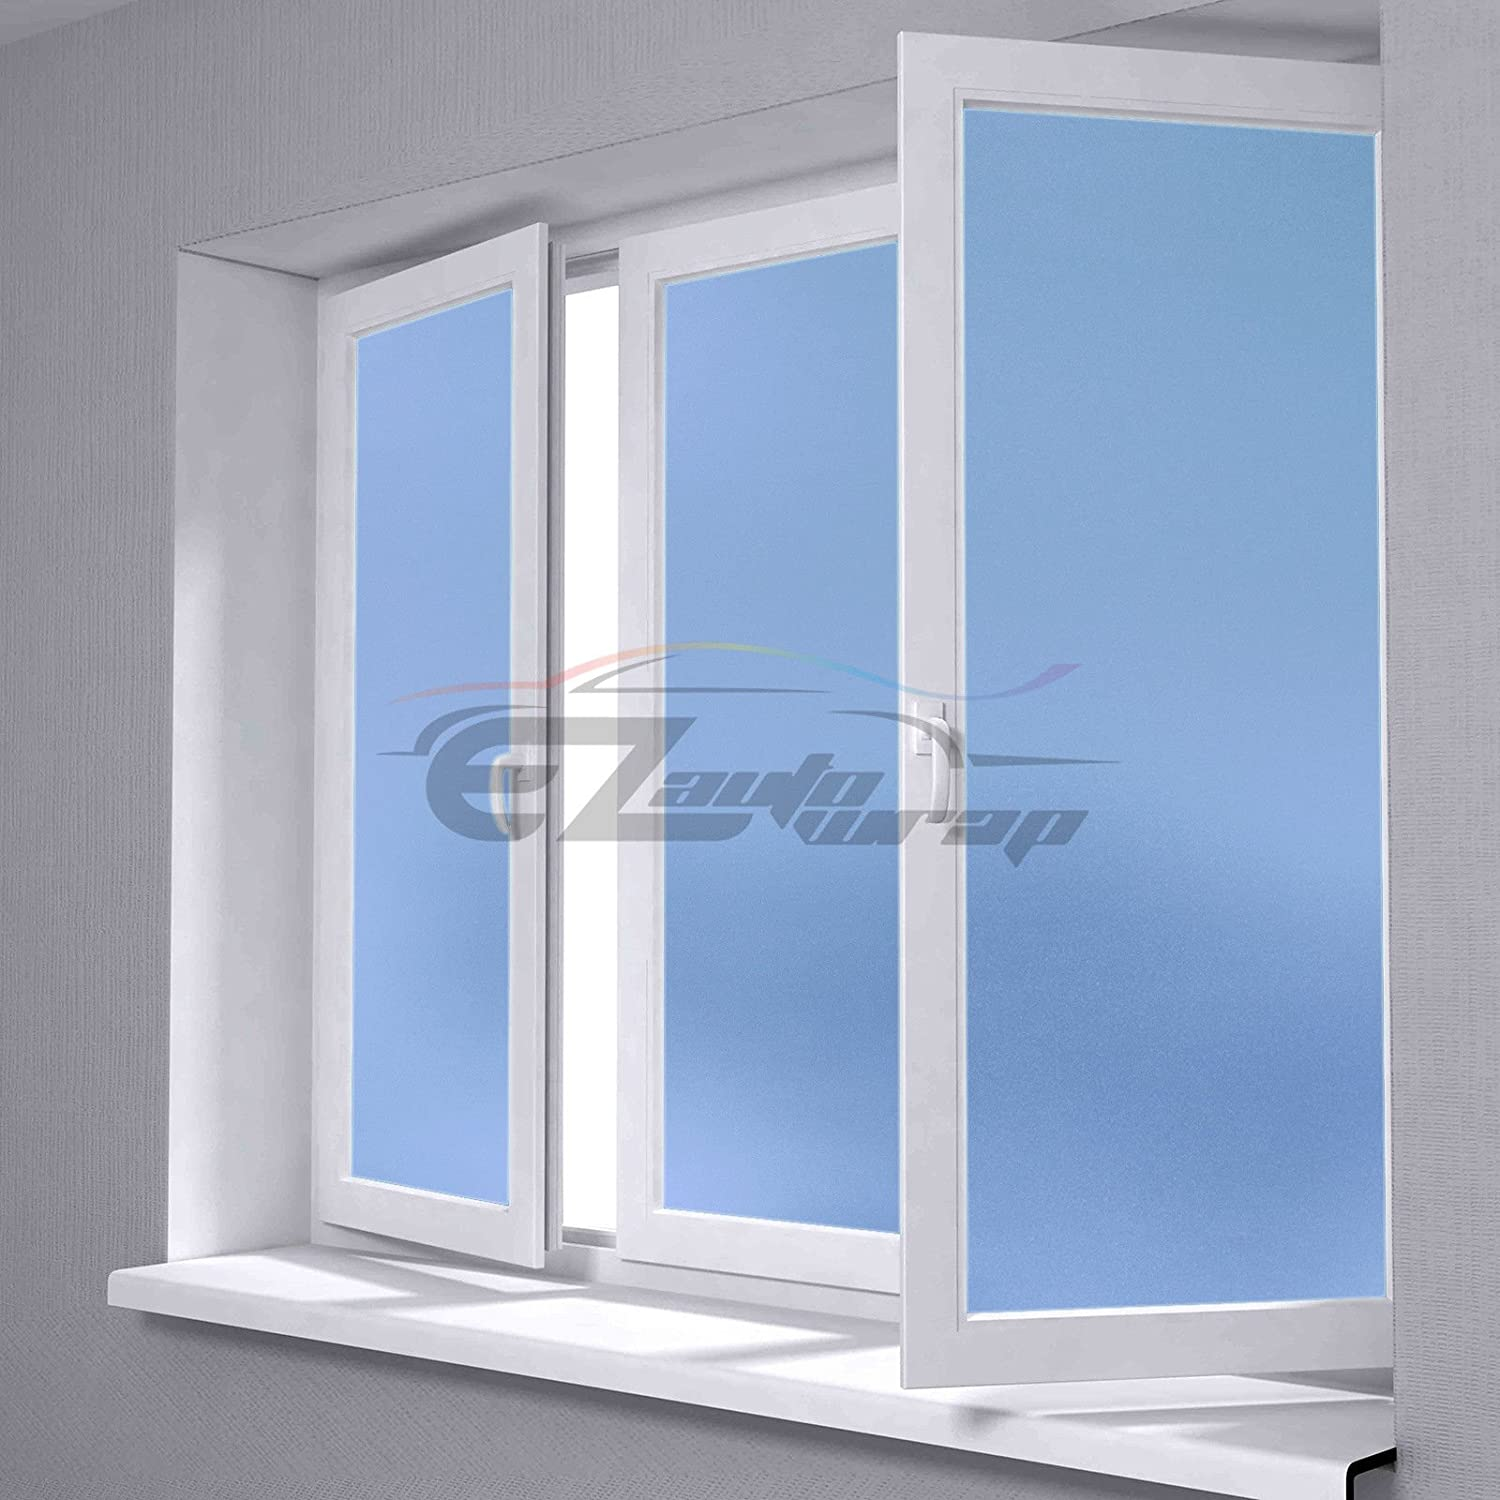 waterproof window film